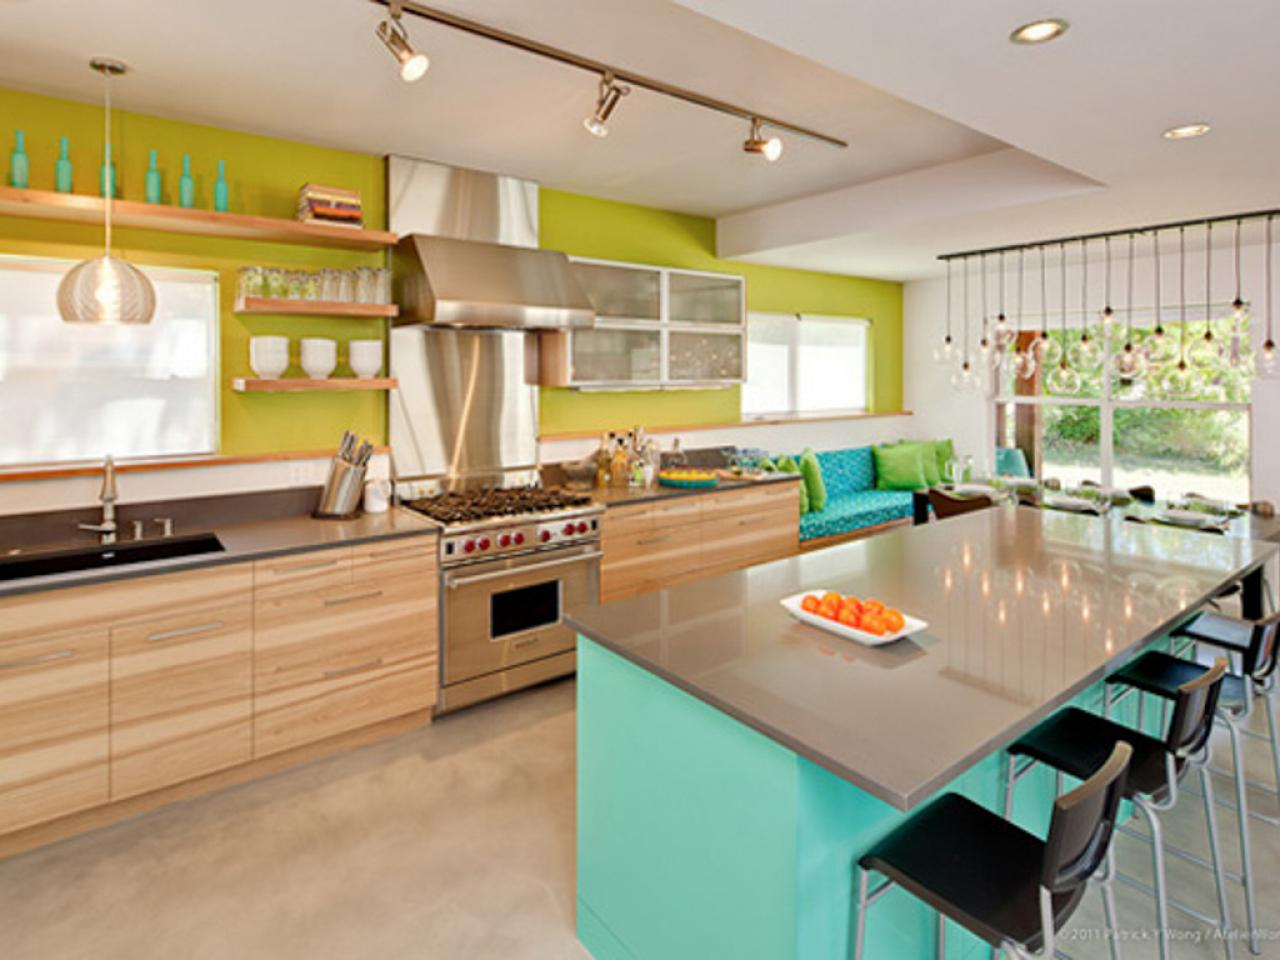 Popular kitchen paint colors pictures ideas from hgtv for Popular kitchen paint colors